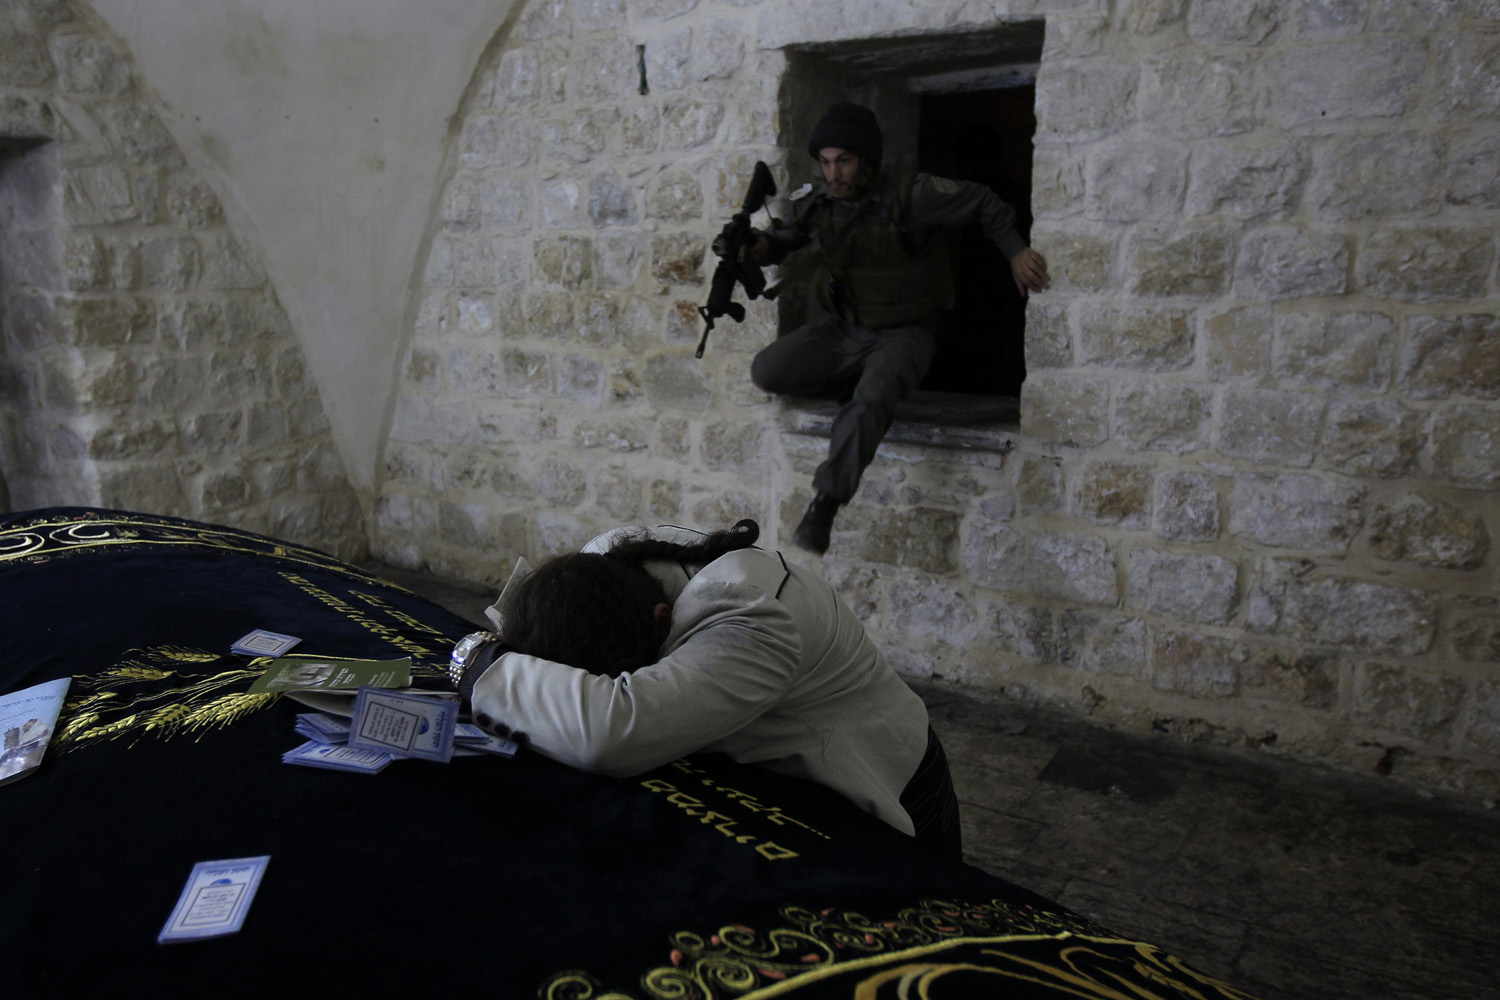 May 30, 2011. Israeli border policeman enters through a window as a Jewish worshiper prays in Joseph's Tomb in the West Bank city of Nablus.